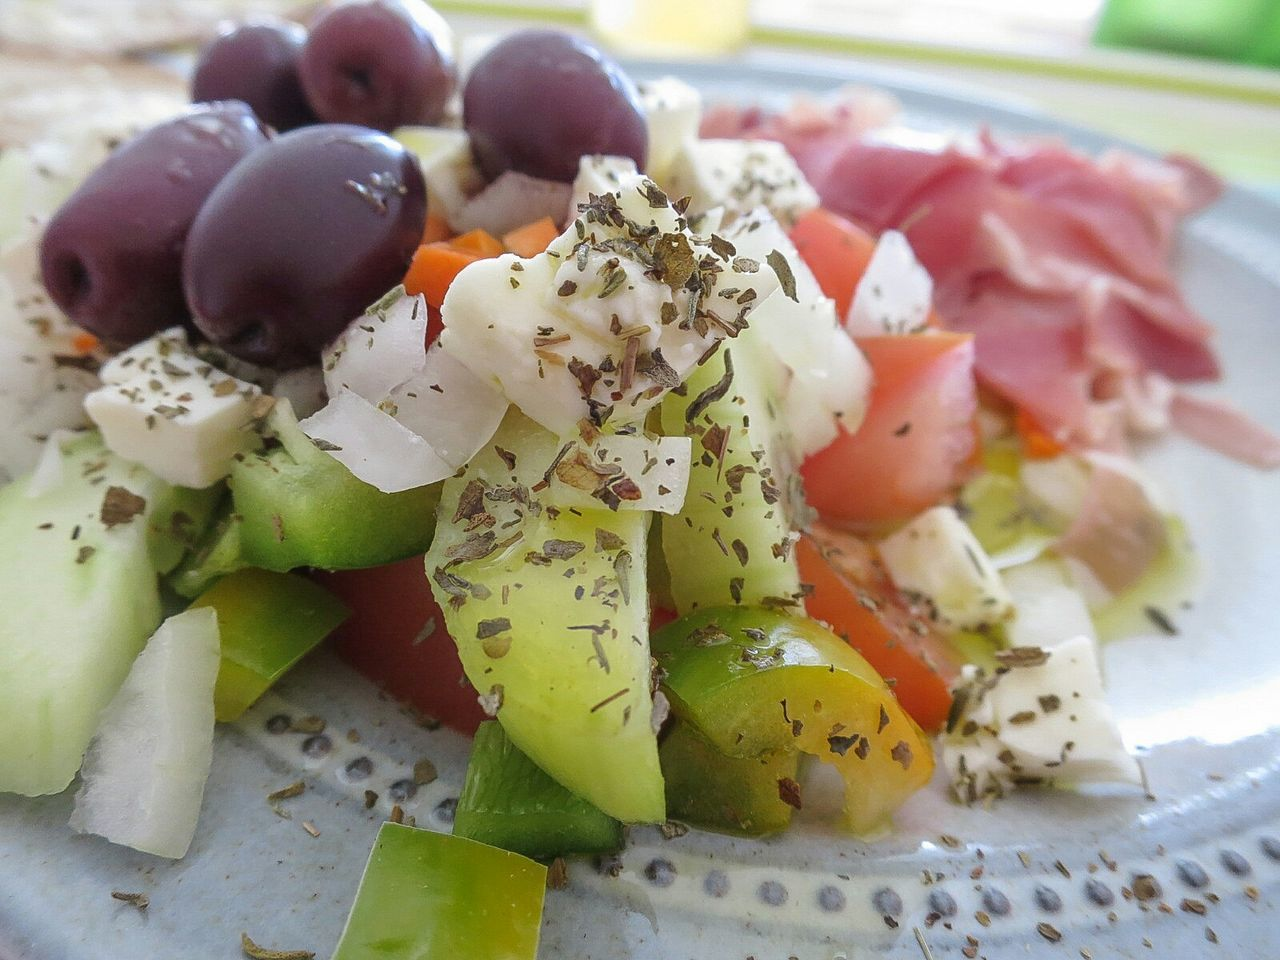 Lovely Lunch Greek Salad Hot Summer Day The Foodie - 2015 EyeEm Awards